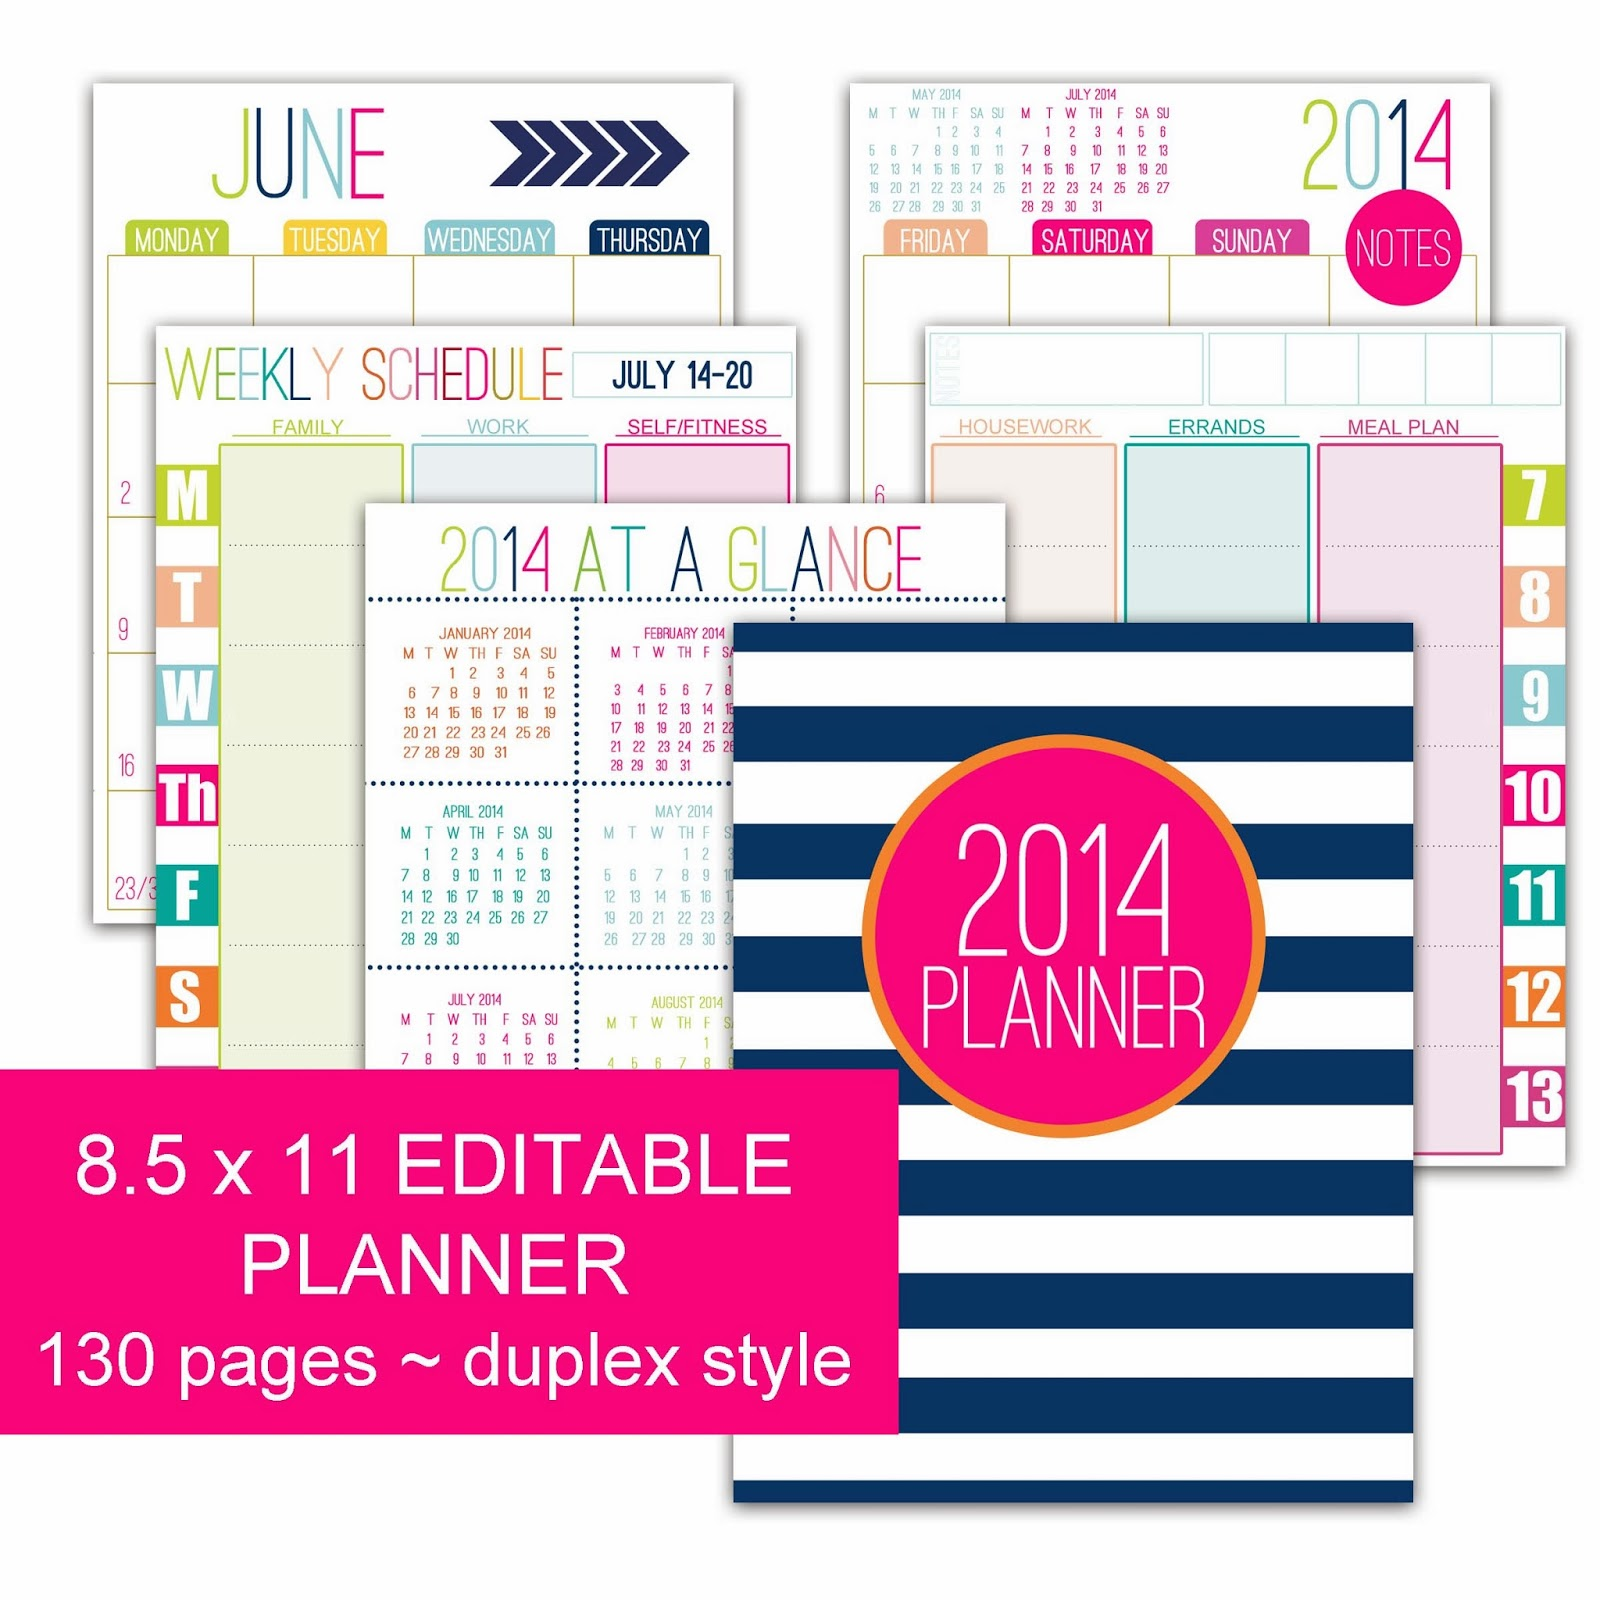 ... as single printouts such as weekly calendars and financial sheets